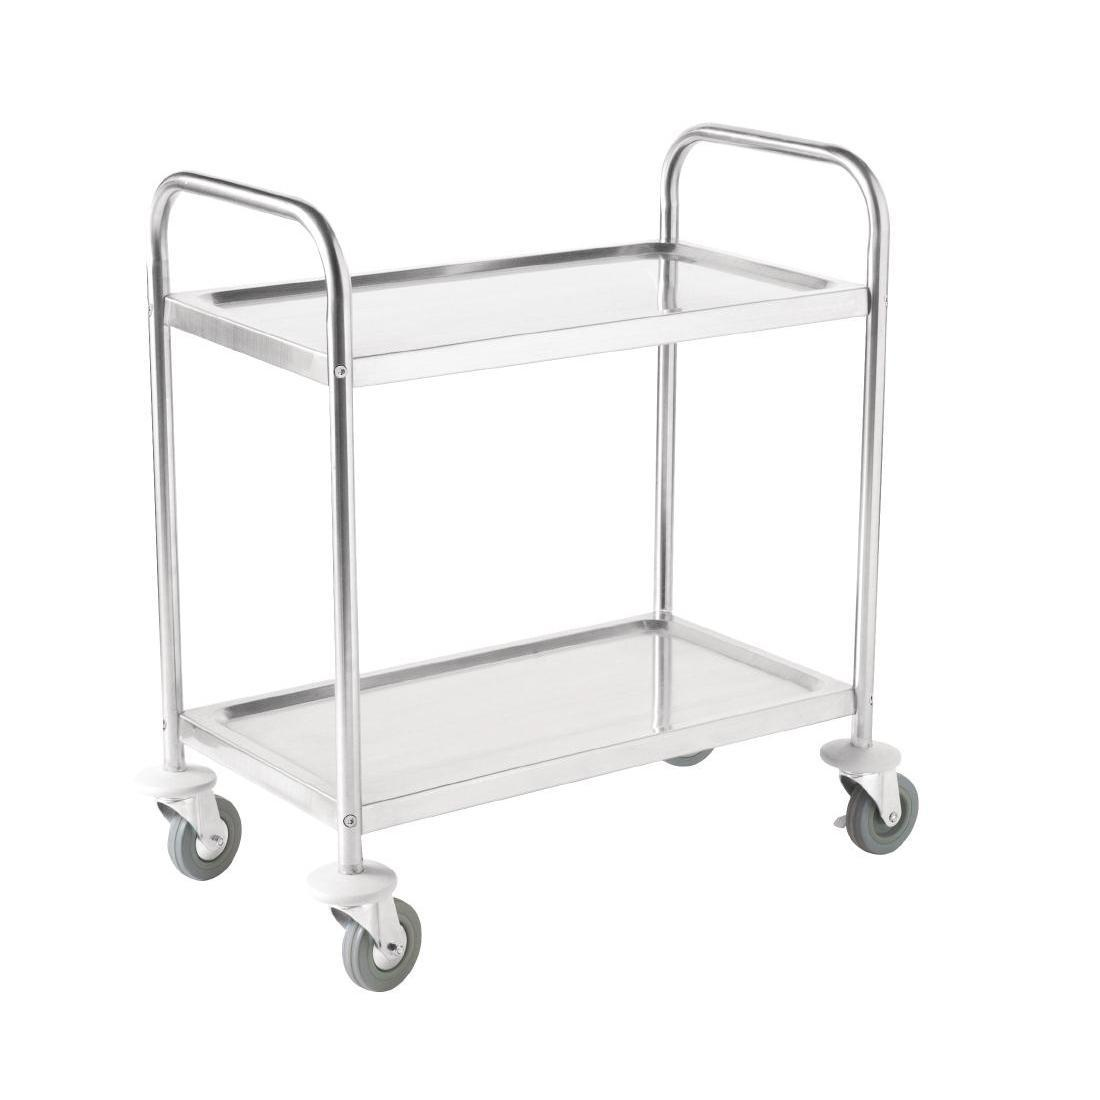 Vogue Stainless Steel 2 Tier Clearing Trolley Medium - Each - F997